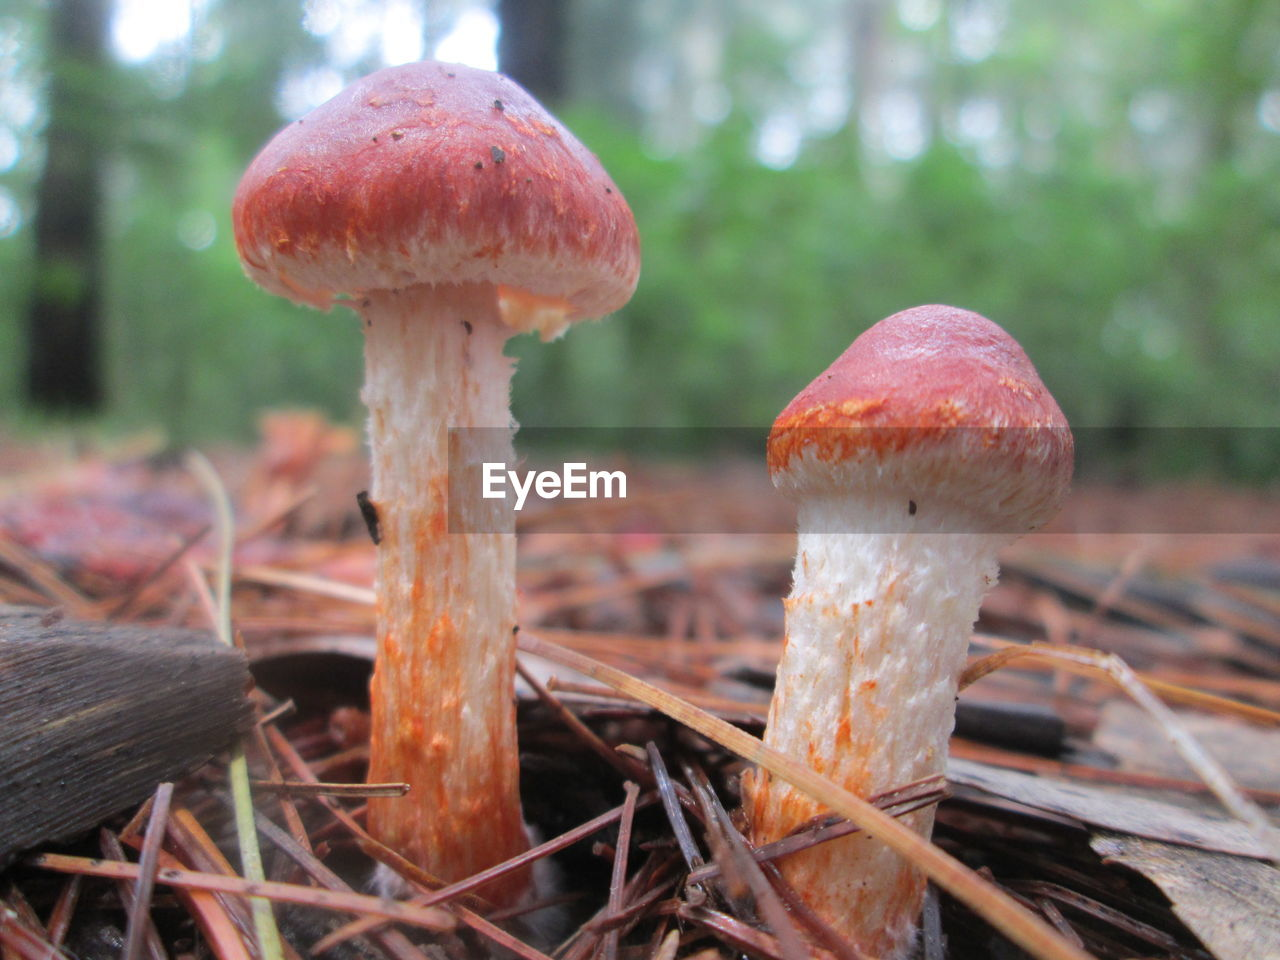 Close-Up Of Mushroom Growing Outdoors